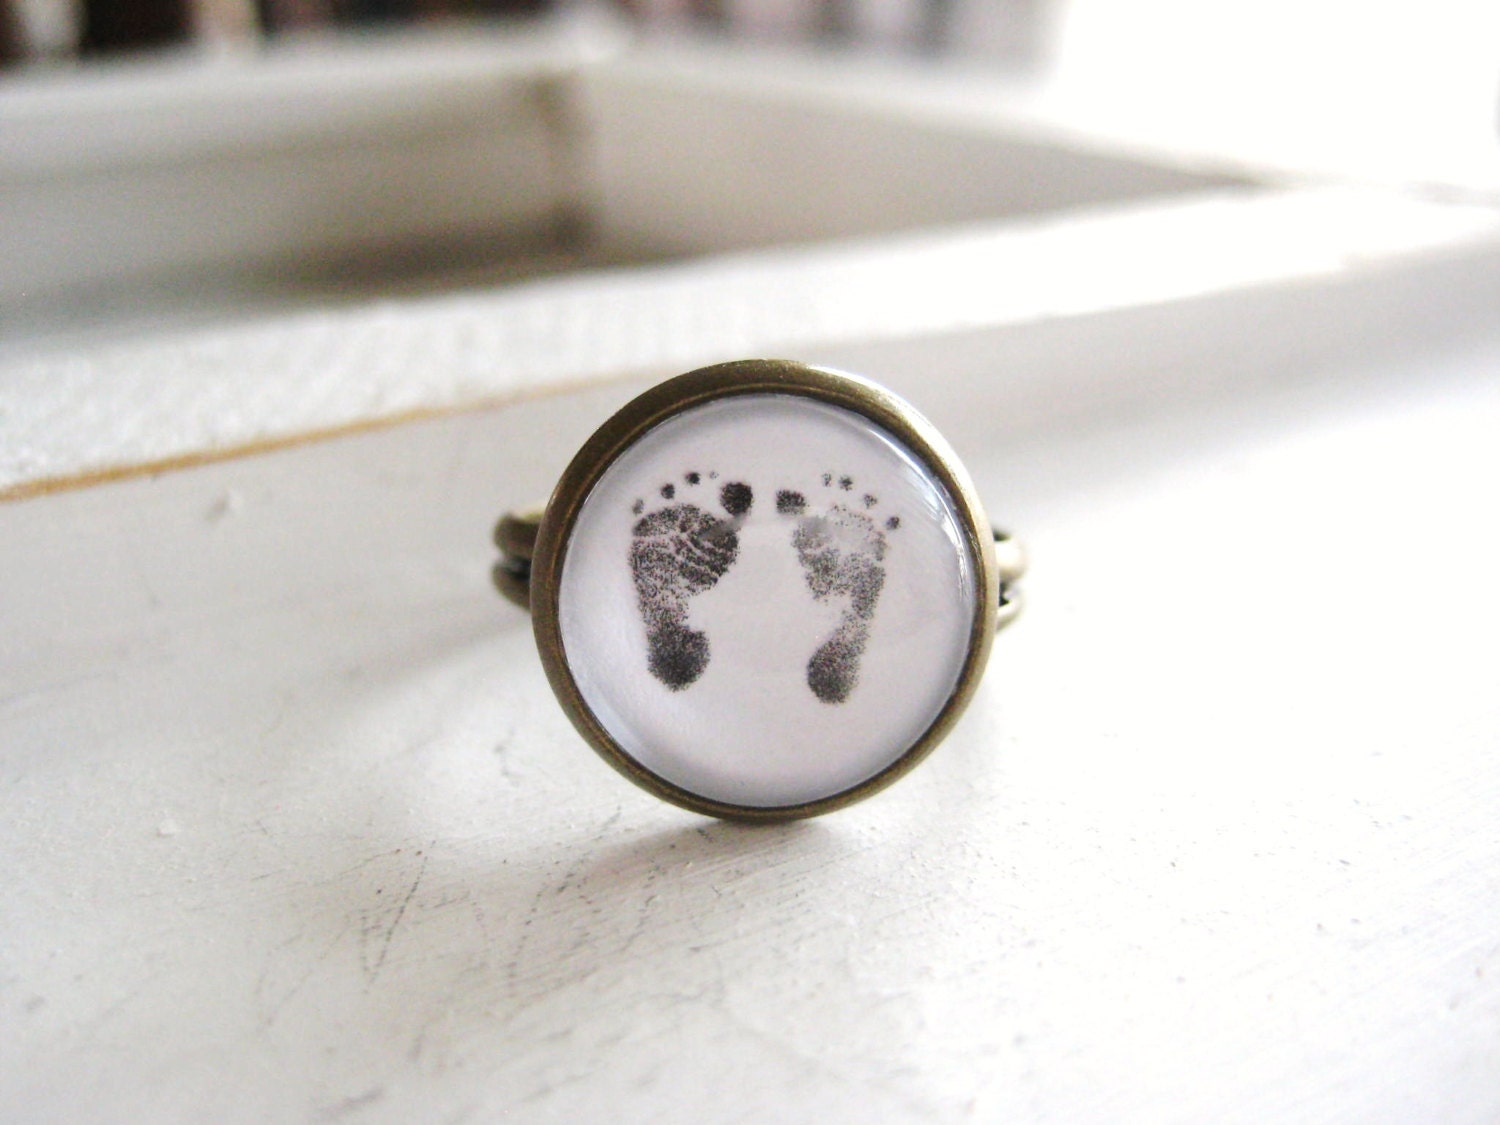 handprint charles footprint silver handwriting ring forstoring argentium finger blog print lulu handmade baby laser jewellery rings engraved